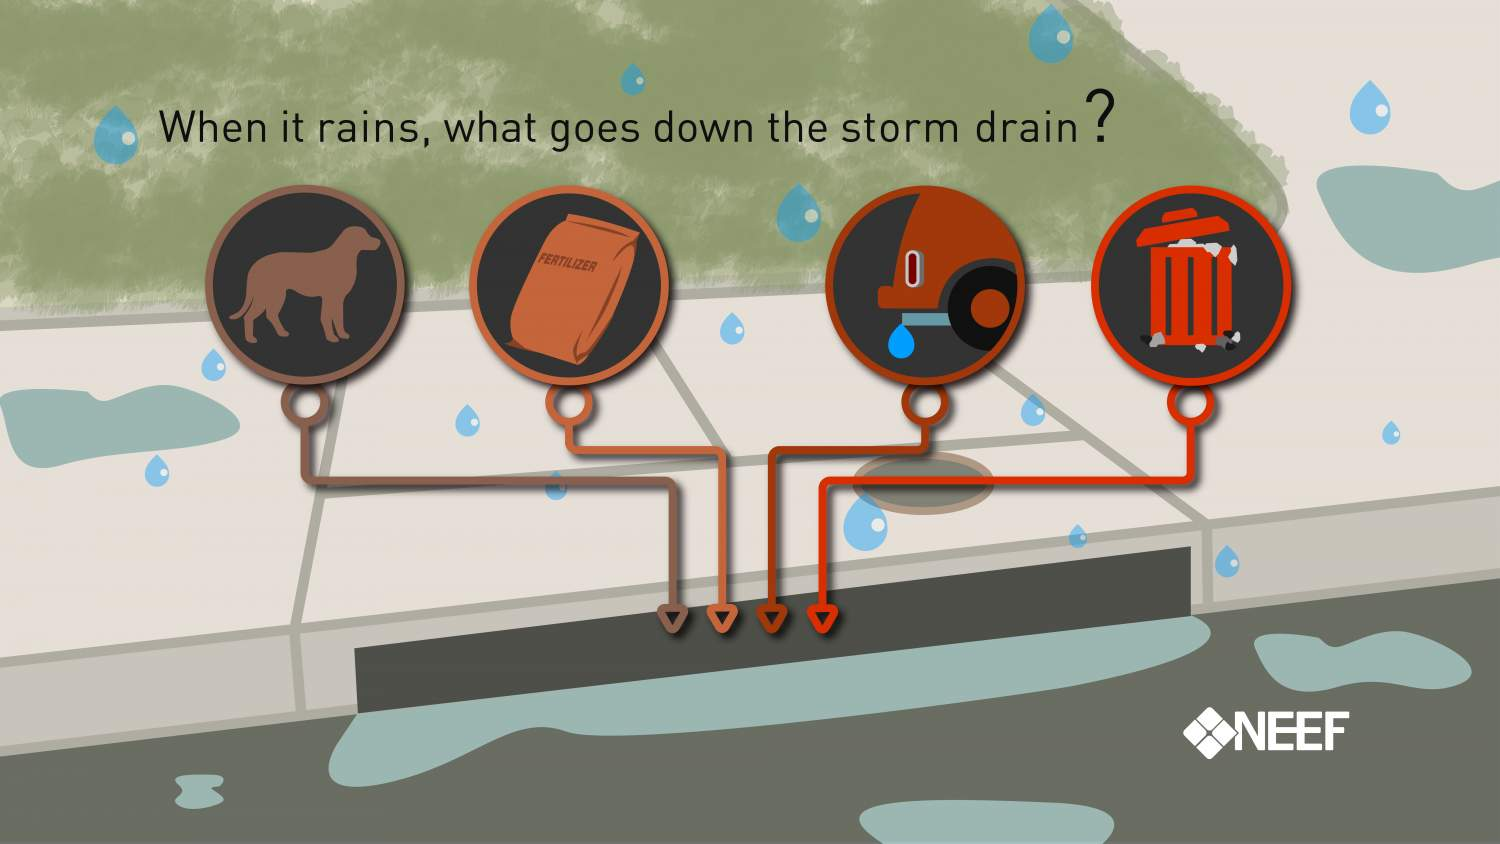 When it rains, what goes down the storm drain?